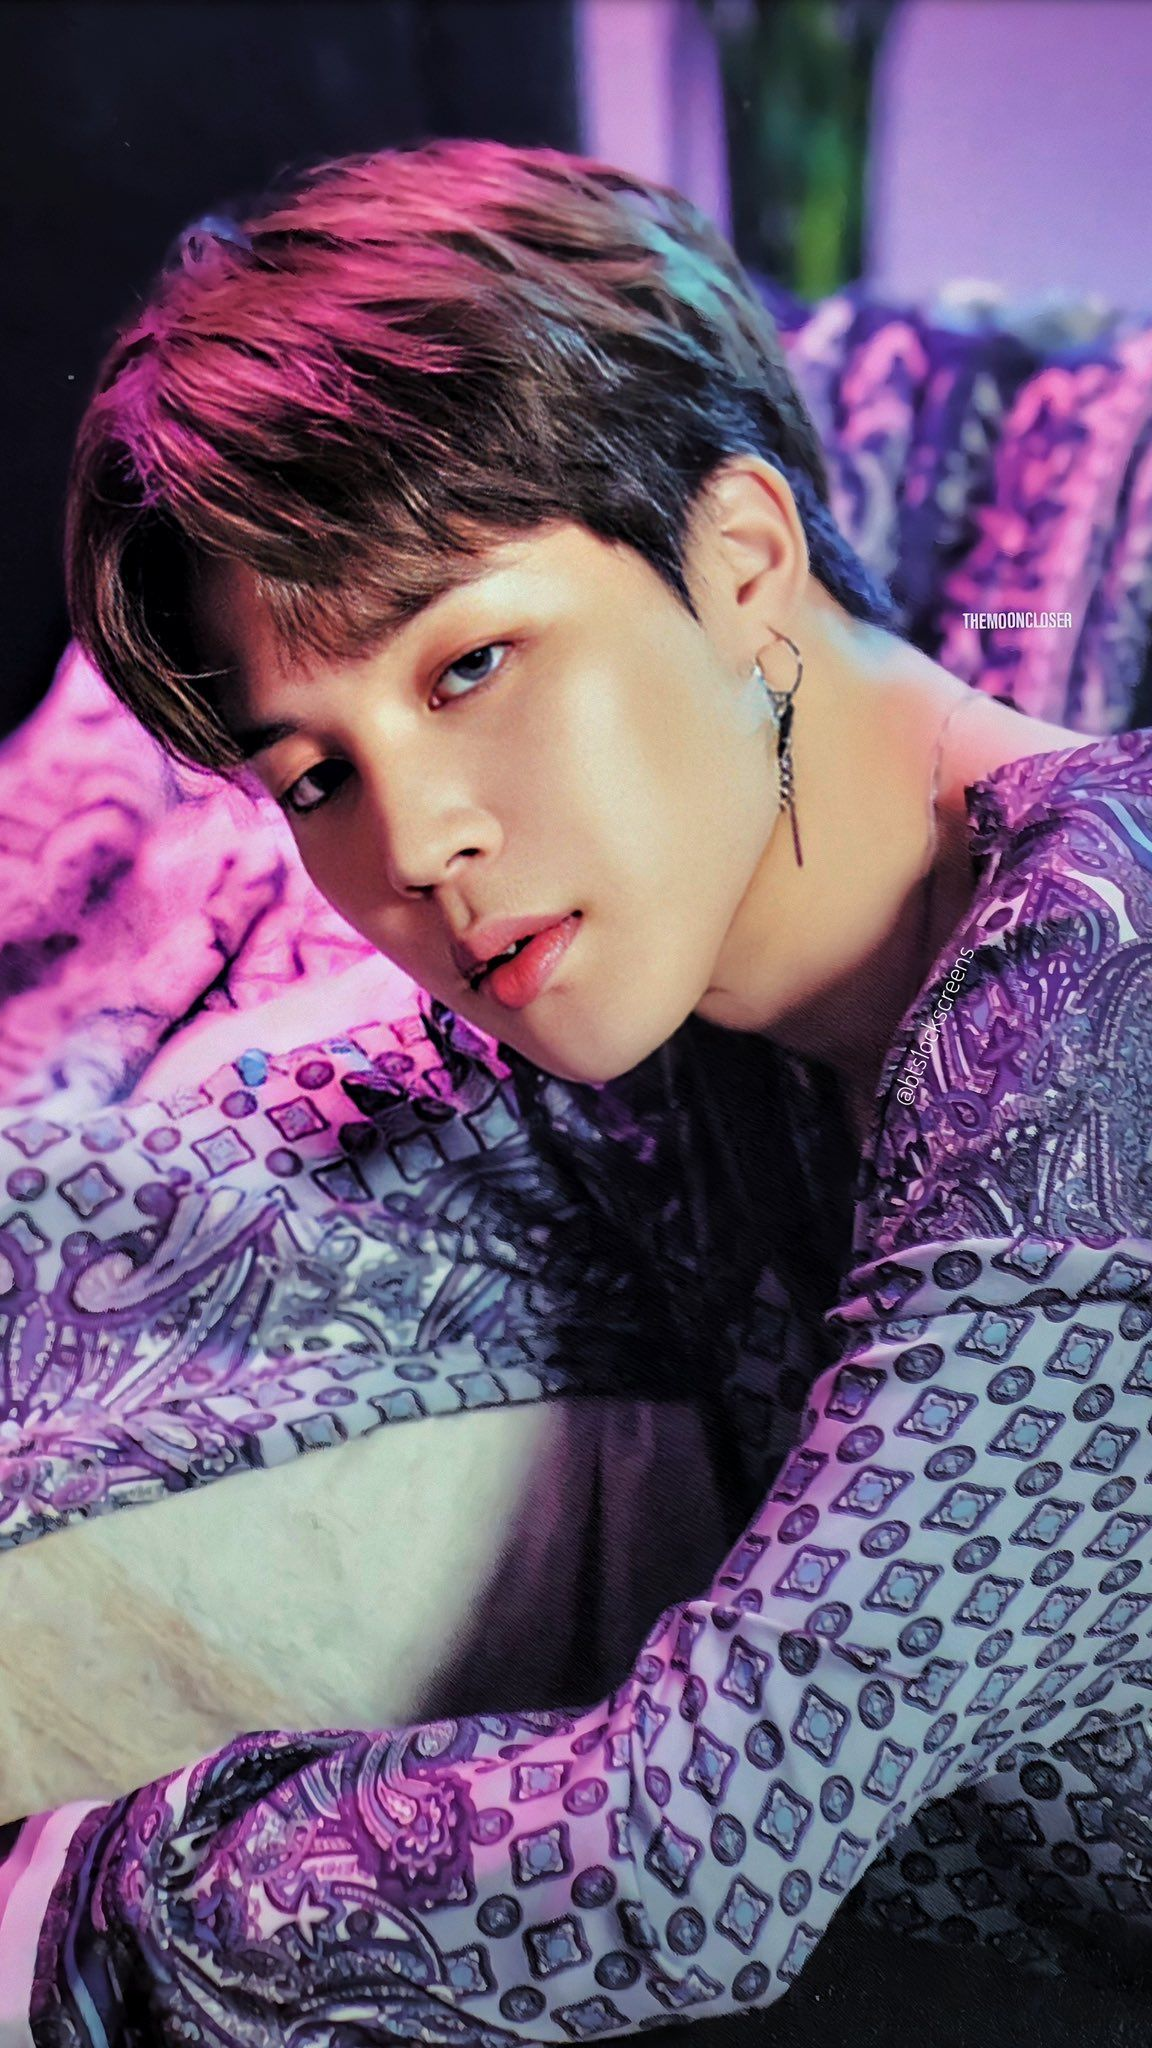 needs mots scans⁷ on in 2020 Foto bts, Jimin, Bts jimin